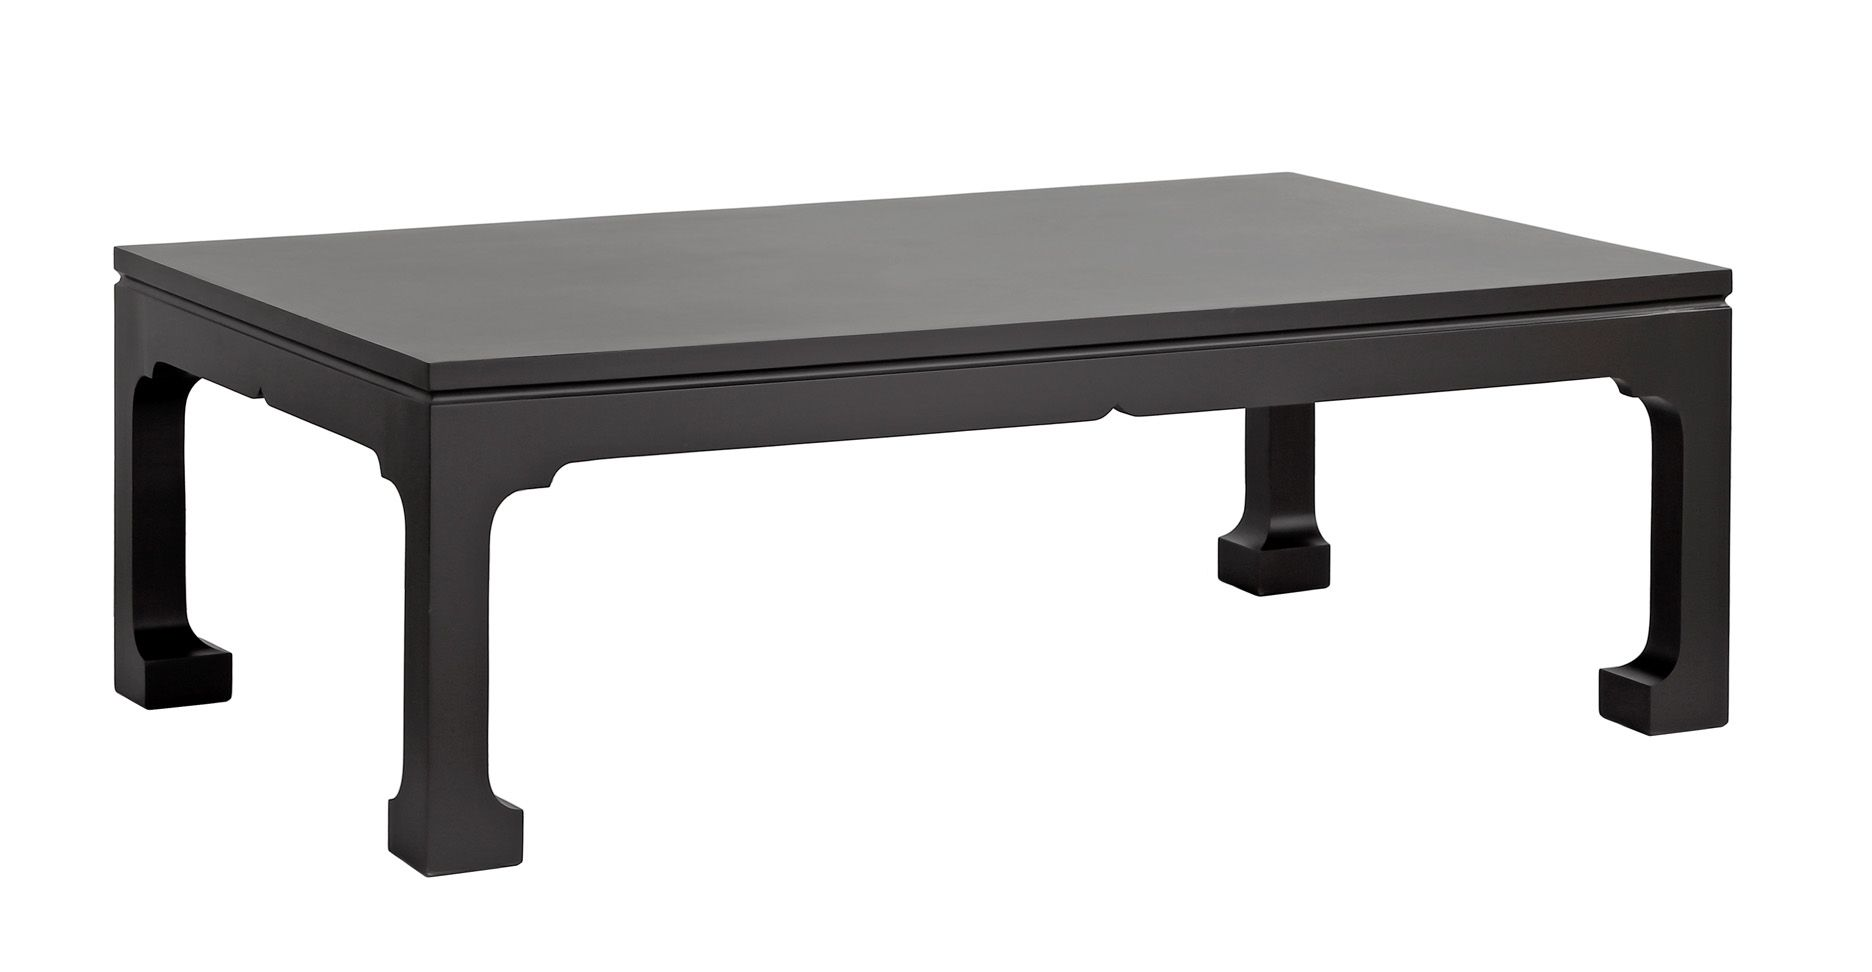 Morris Coffee Table Coffee Tables For Sale Coffee Table Design Coffee Table [ jpg ]